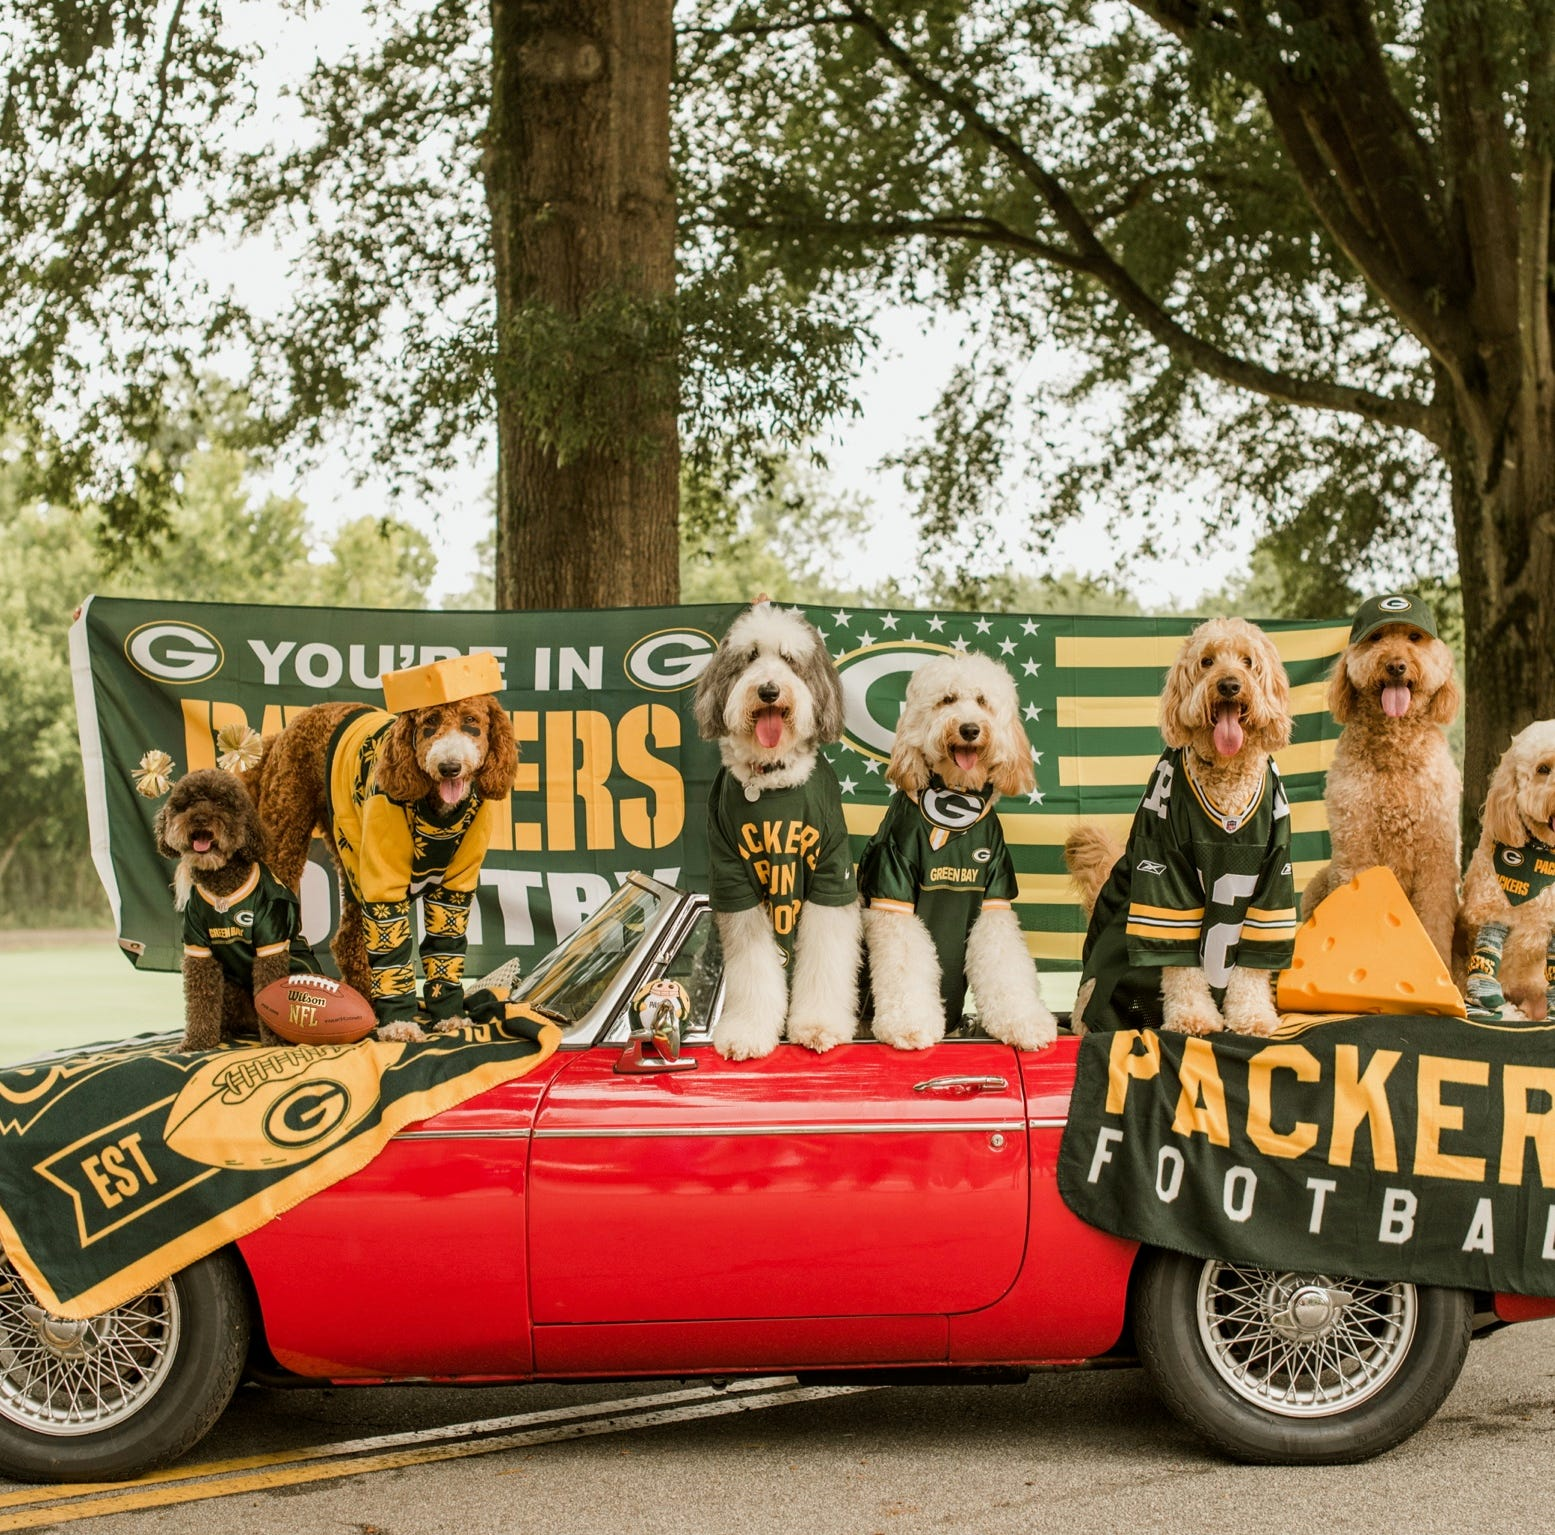 The 7 dogs in That Dood Squad get their Packers game faces on in Instagram photo